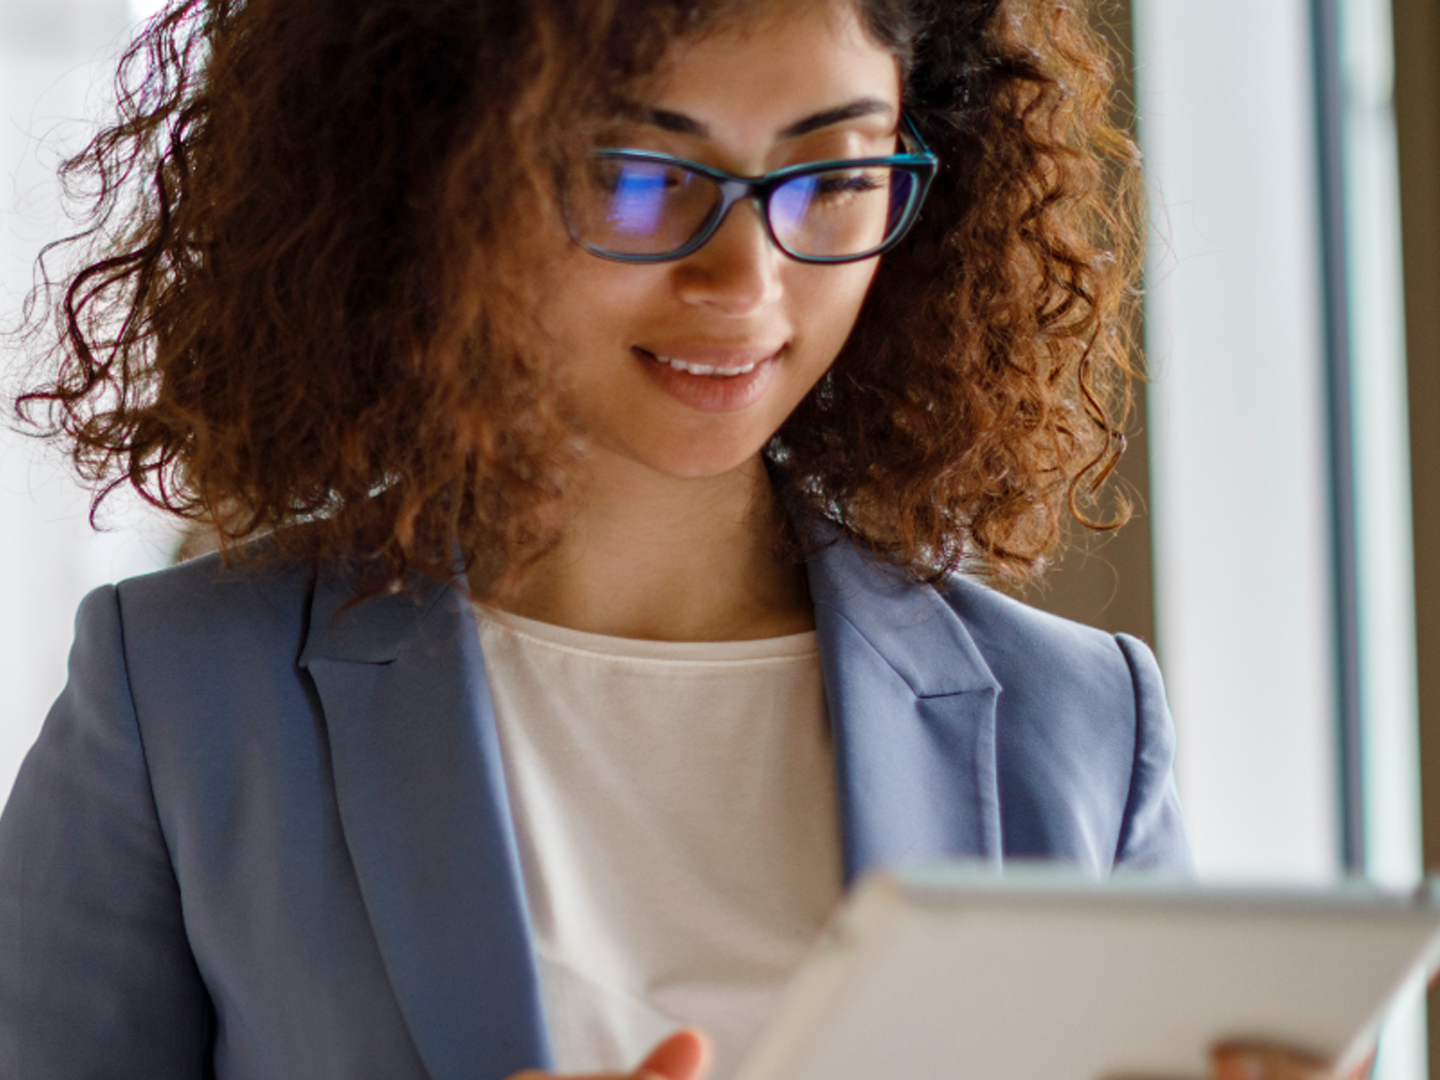 Woman wearing glasses looking at tablet.